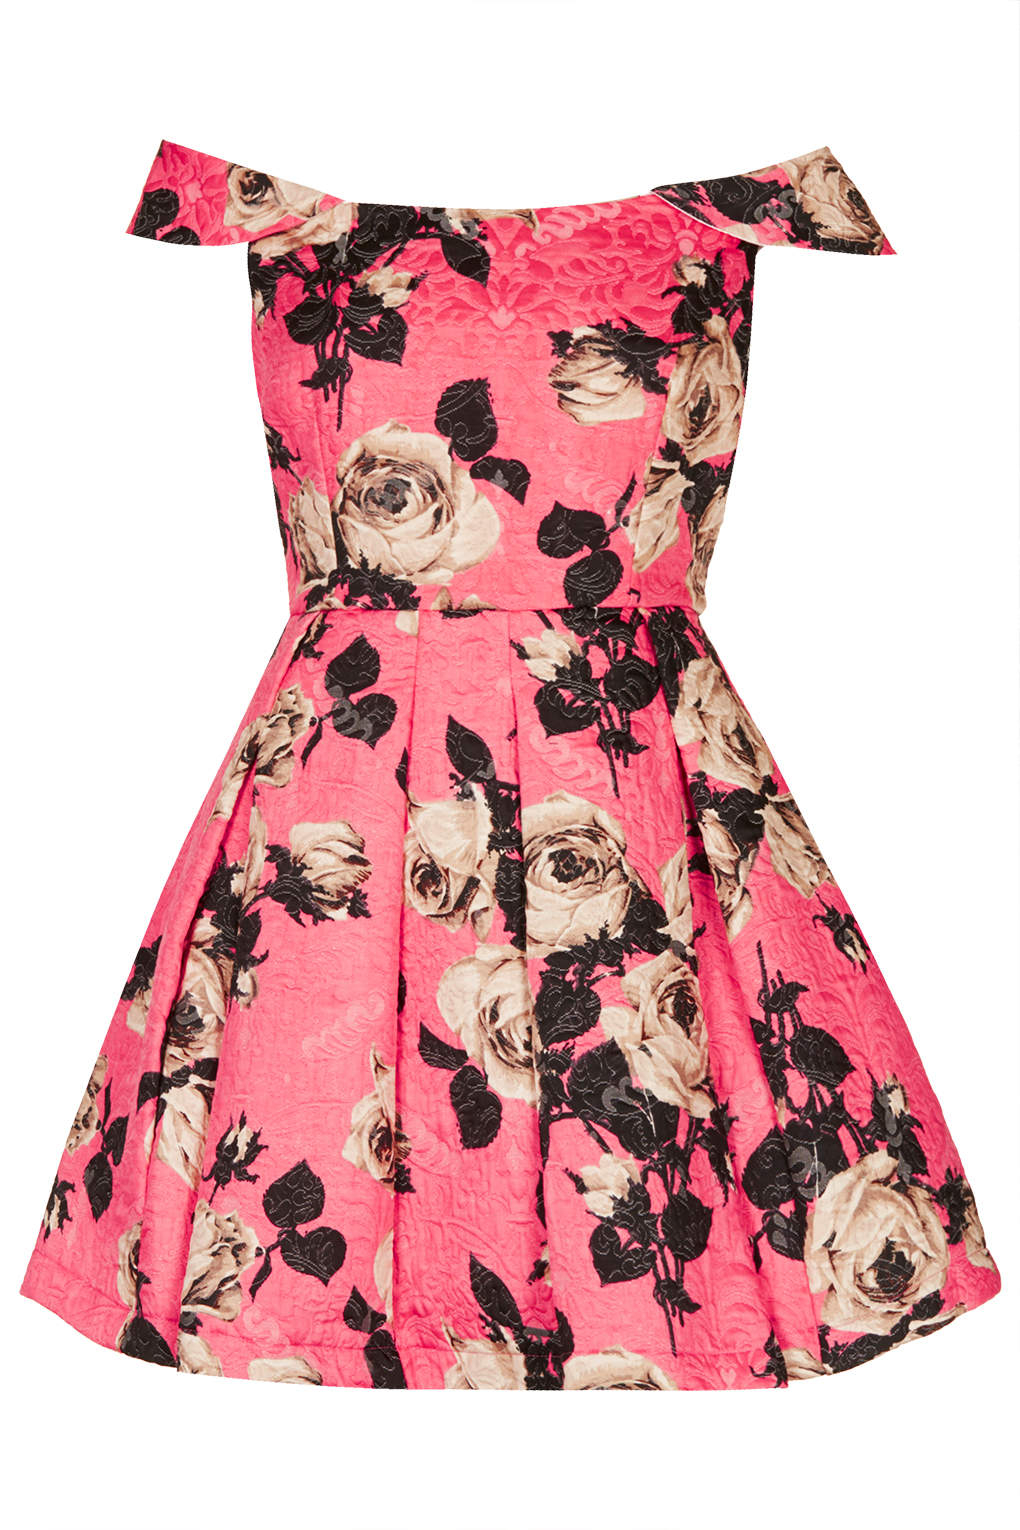 Lyst - Topshop Bardot Floral Prom Dress in Pink